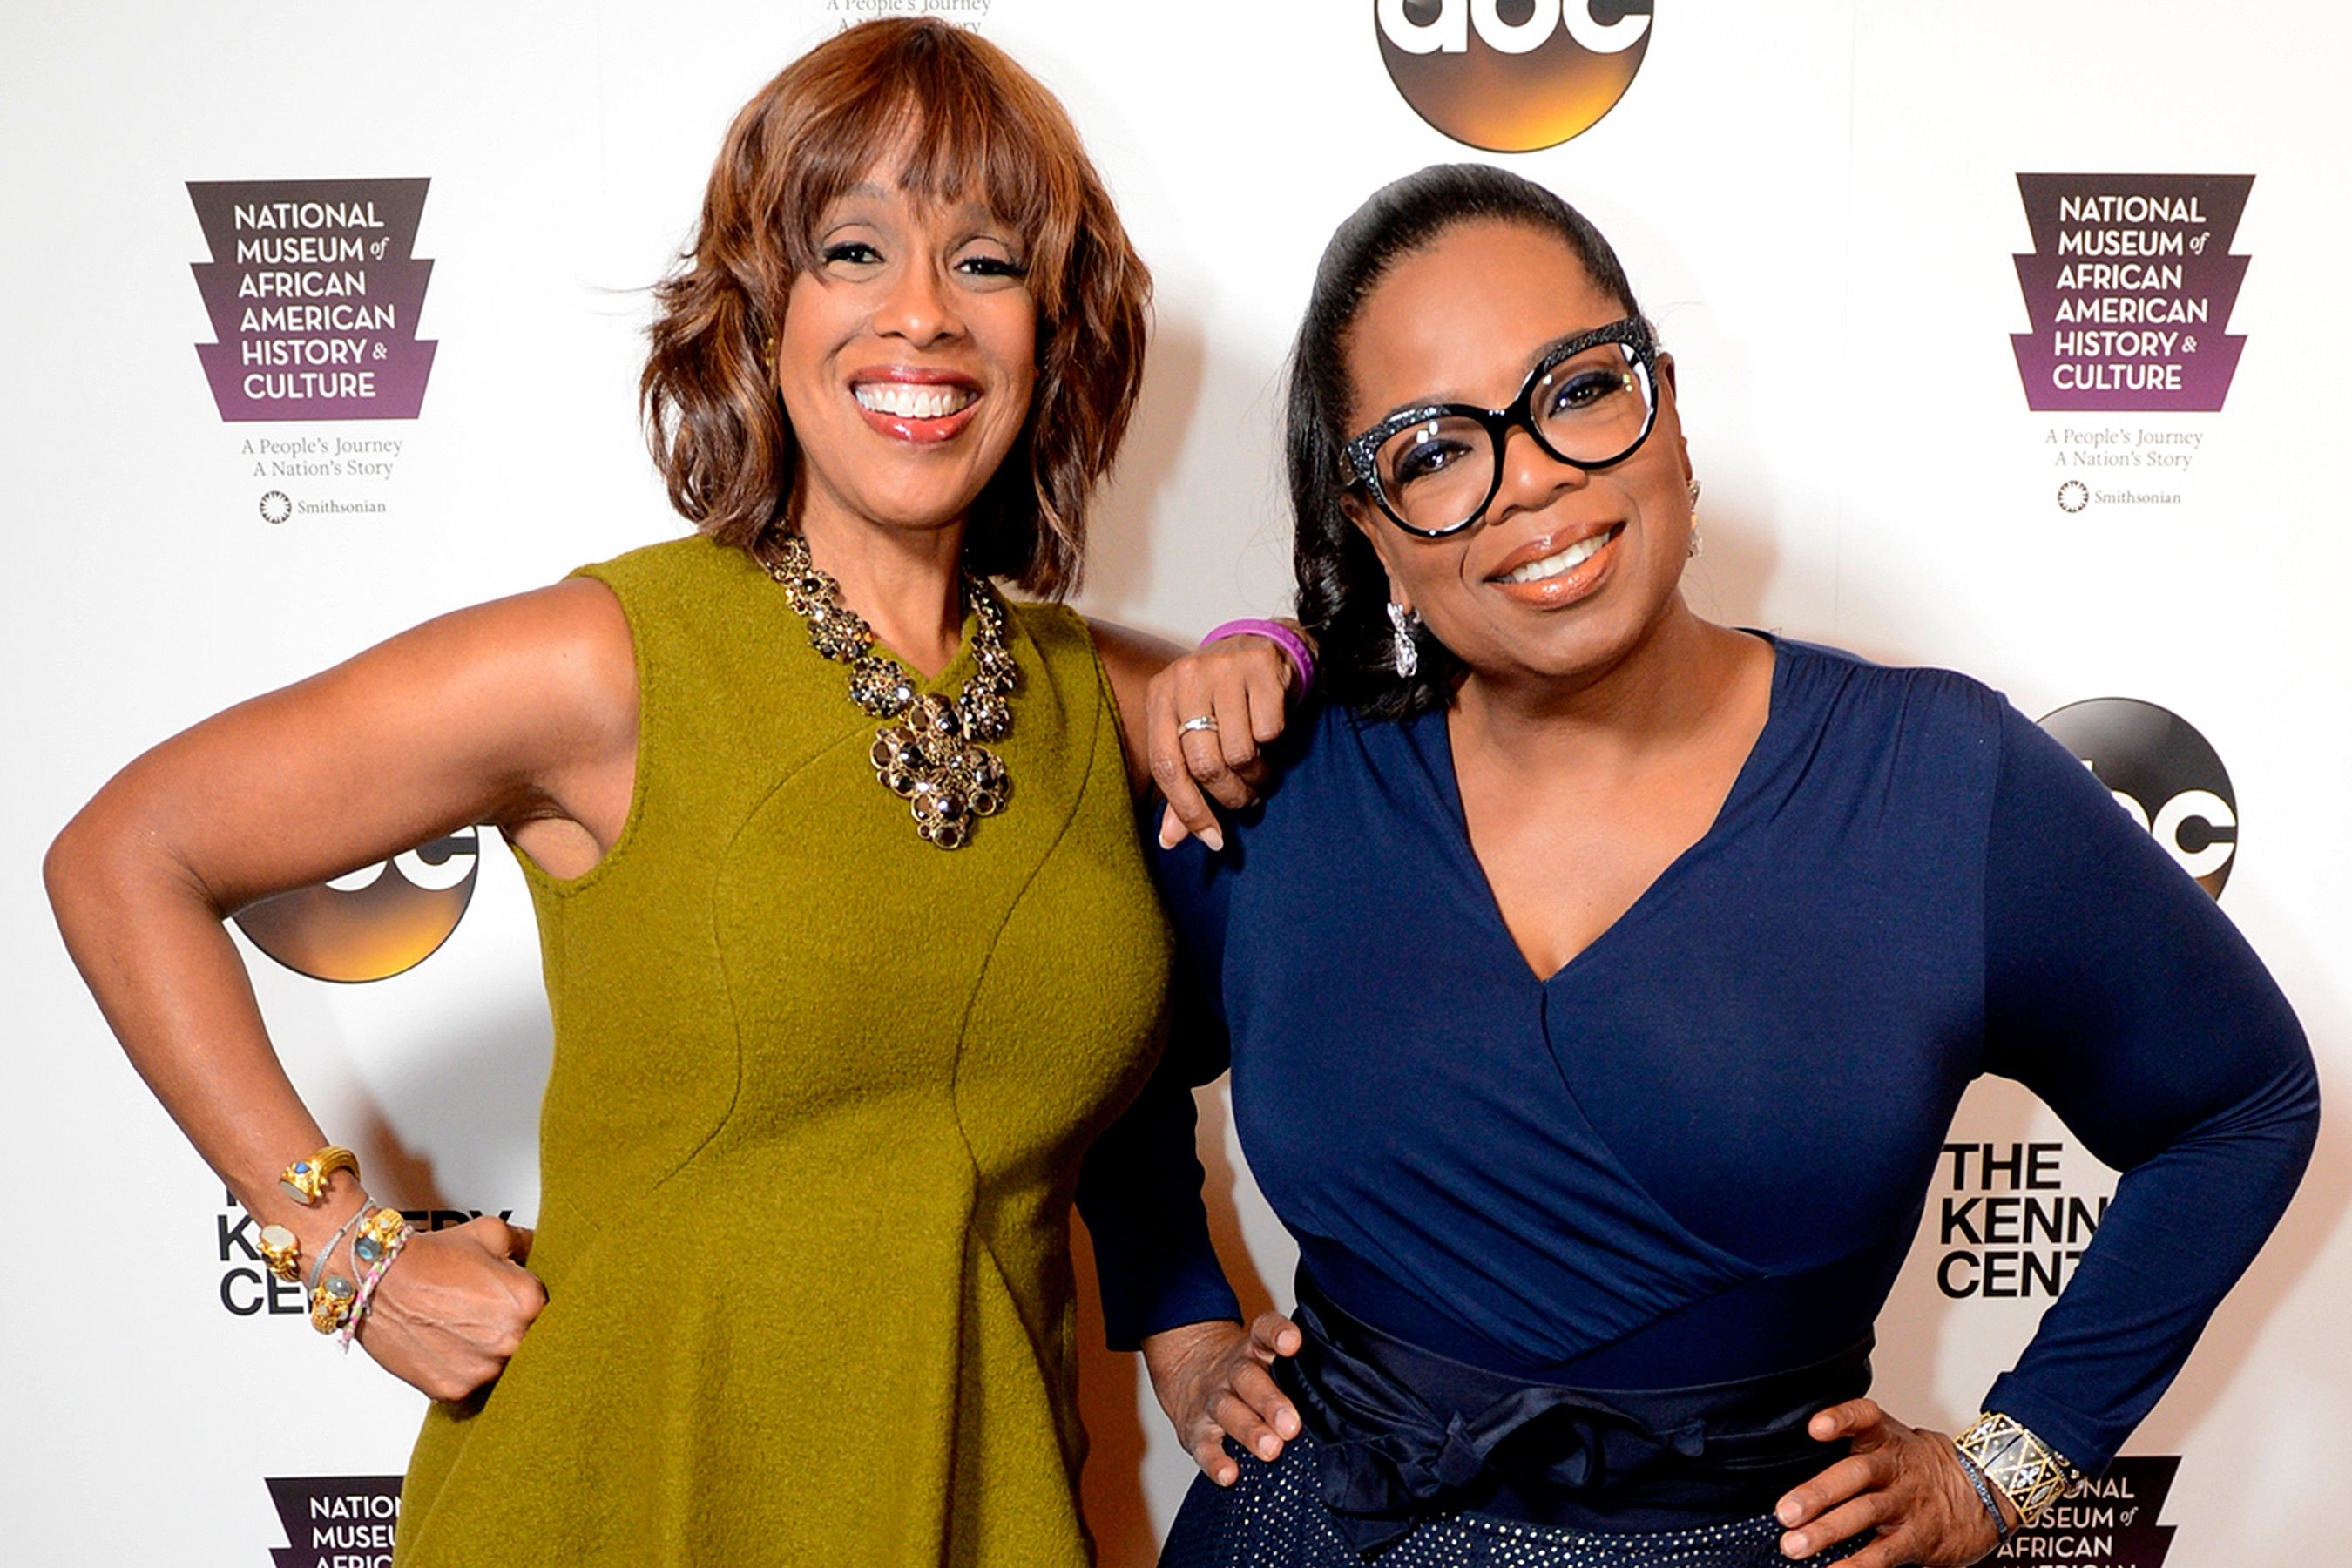 Gayle King says best friend Oprah will 'never' run for president